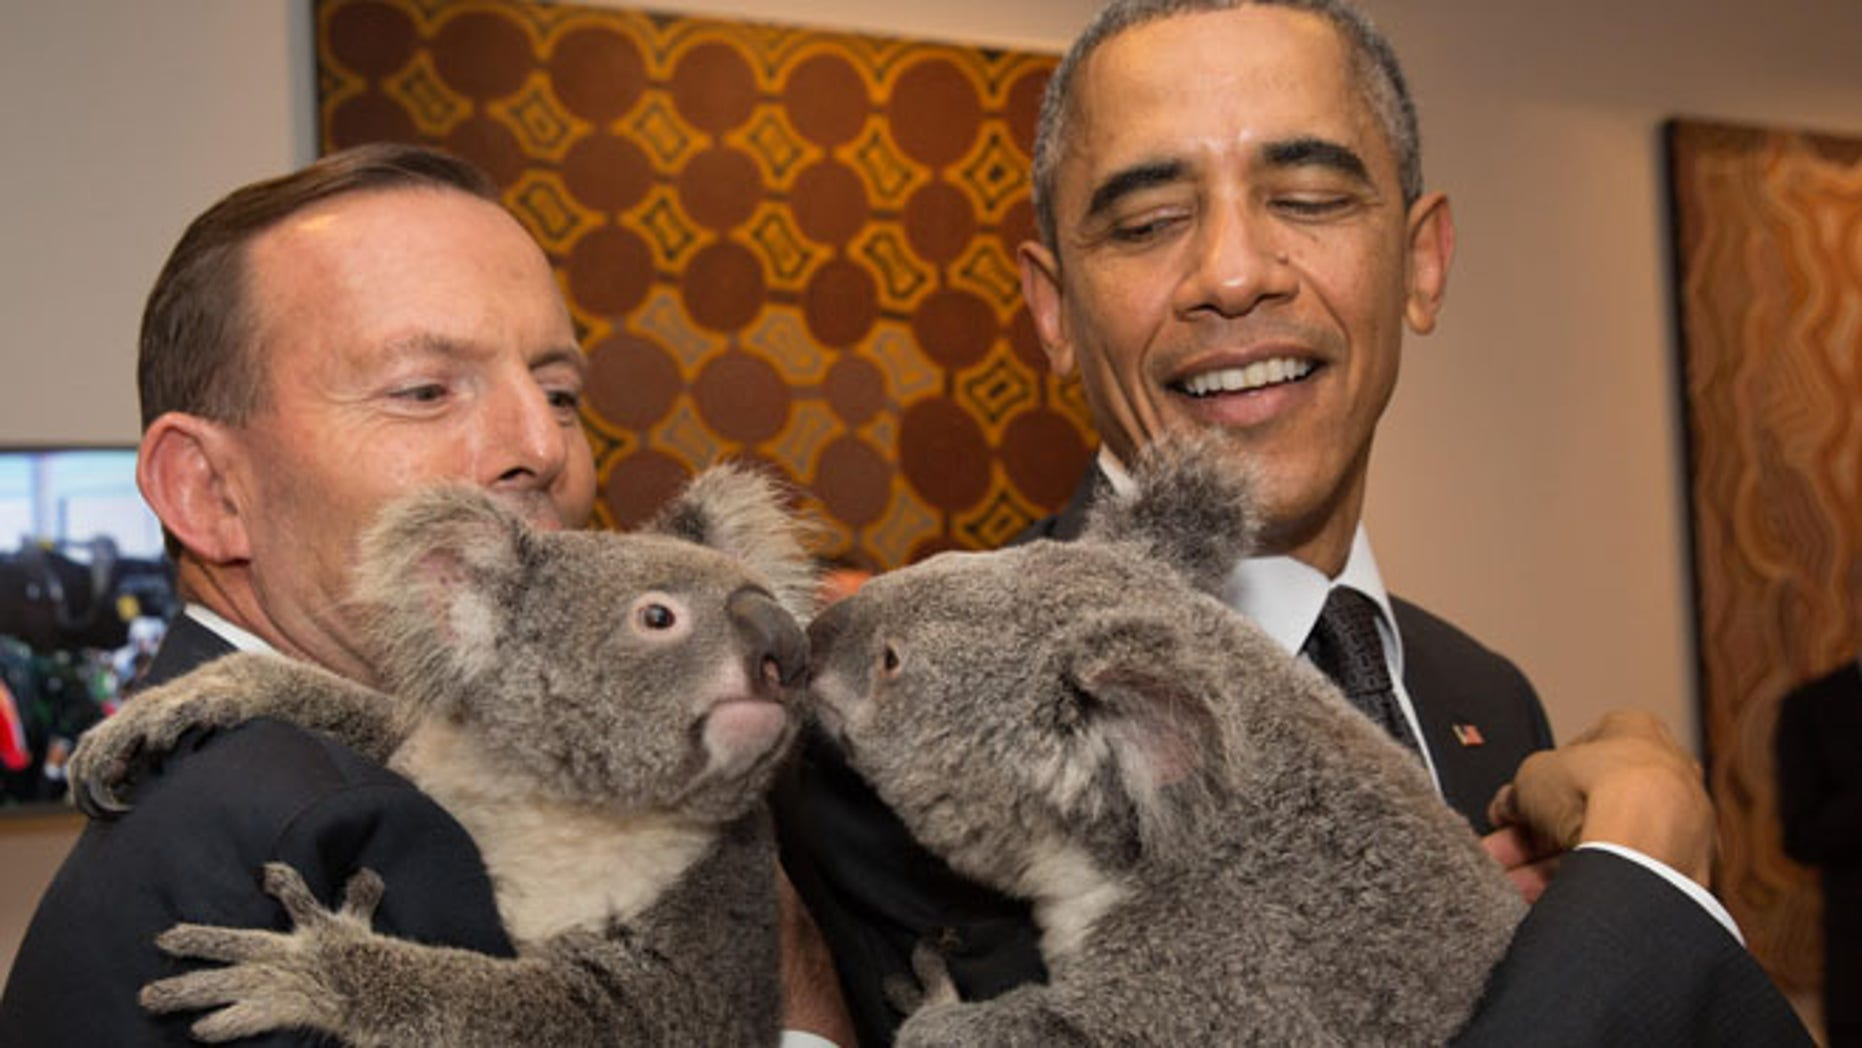 Nov. 15, 2014: U.S. President Barack Obama, right,  and Australia's Prime Minister Tony Abbott hold koalas during a photo opportunity on the sidelines of the G-20 summit in Brisbane, Australia.  (AP)